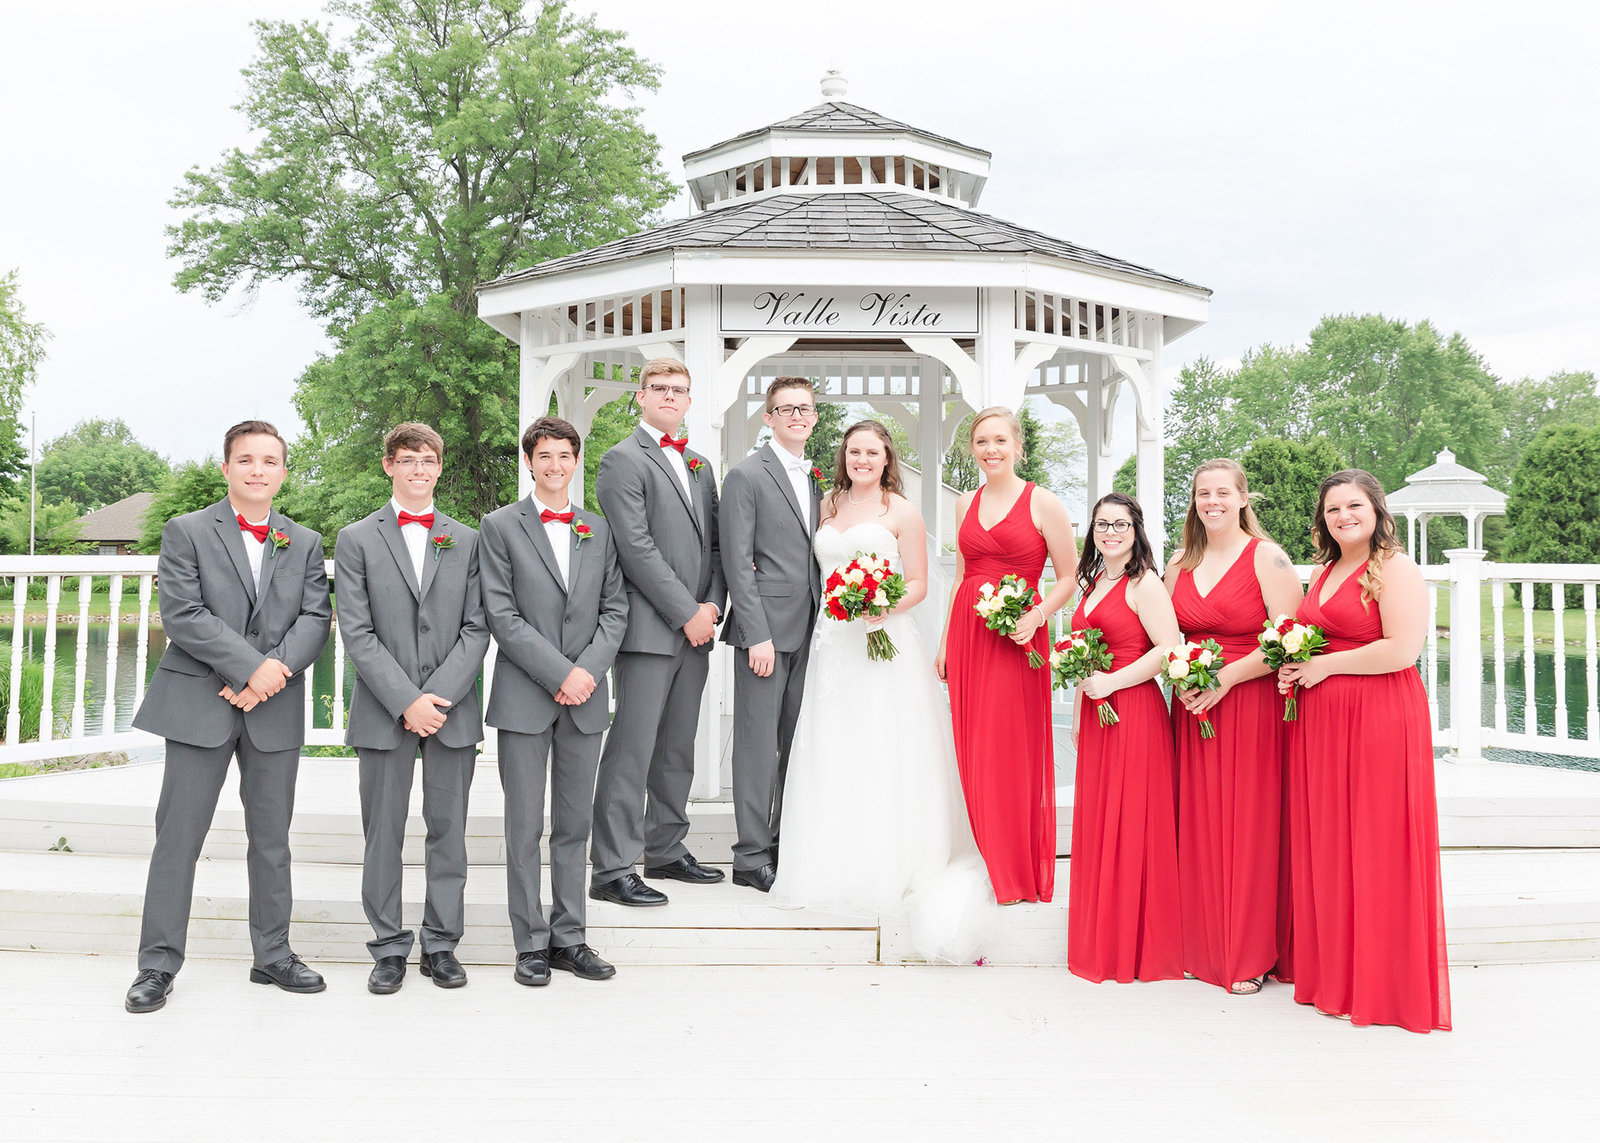 Valle Vista Indianapolis wedding bridal party red and charcoal